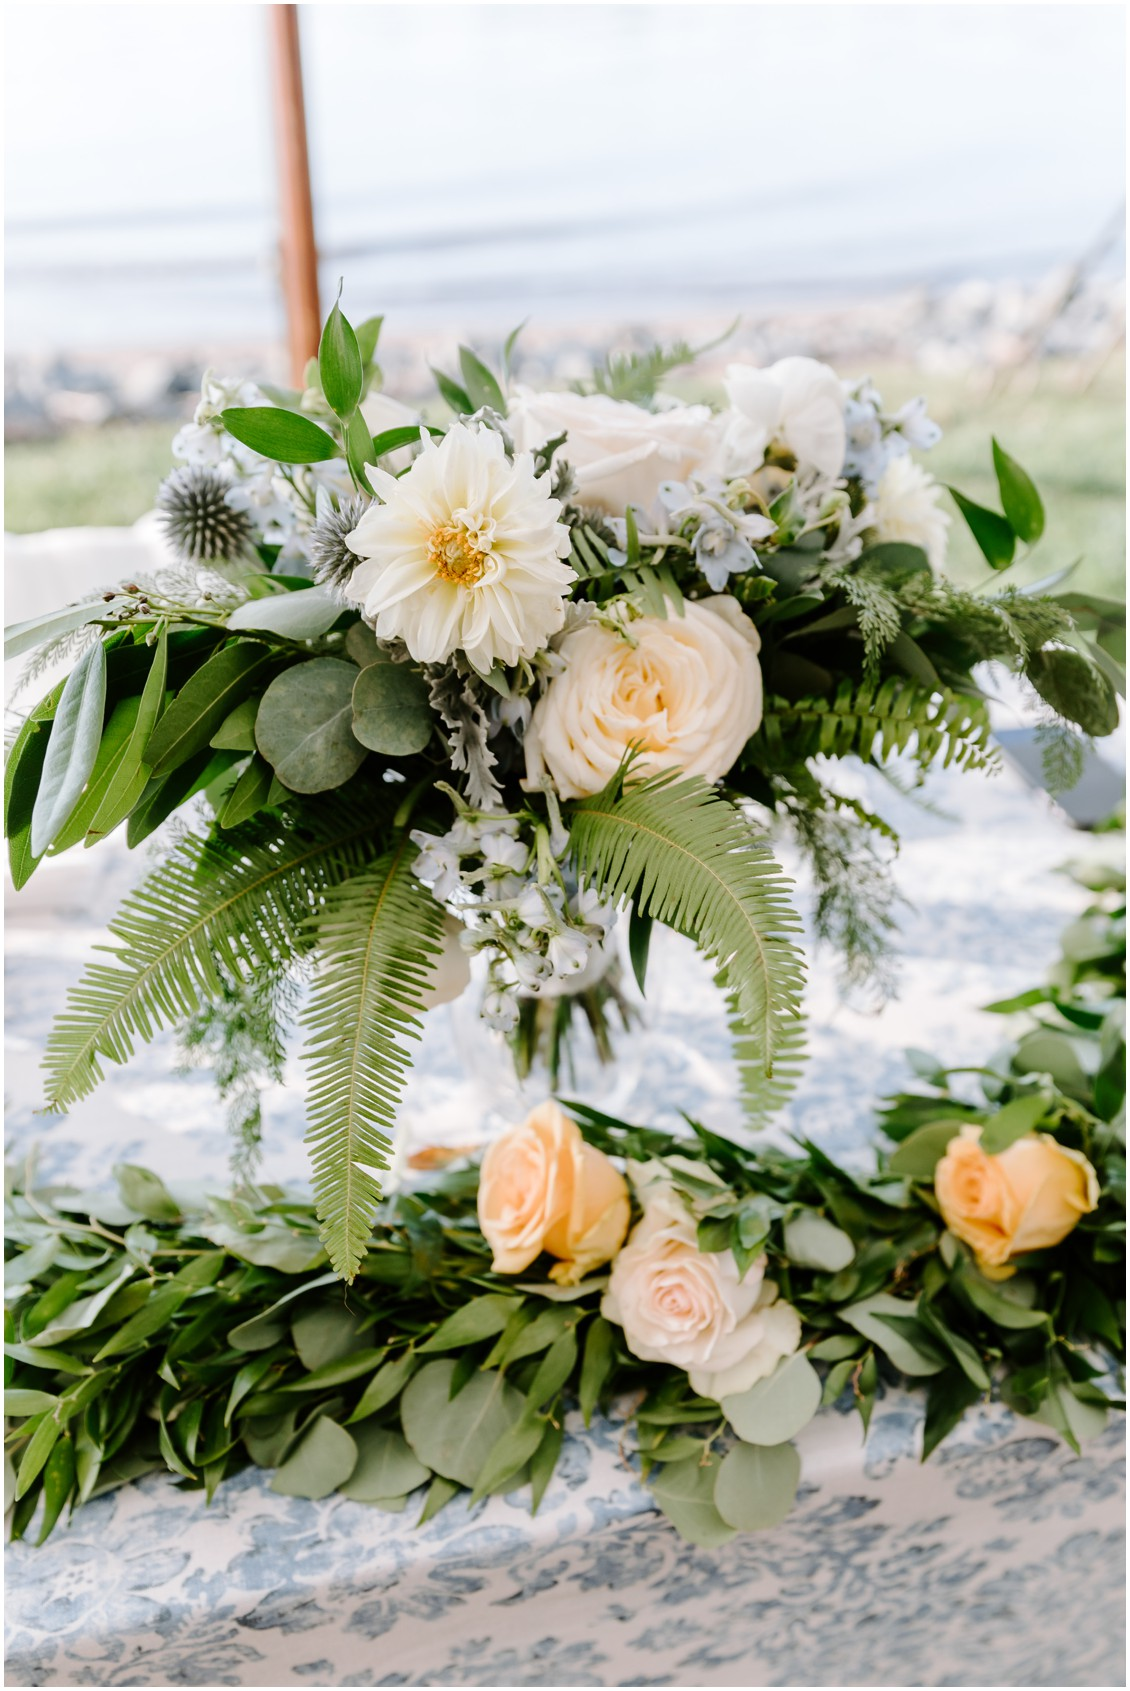 Detail of bridal bouquet and table swag | My Eastern Shore Wedding | Sherwood Florist | Eastern Shore Tents and Events